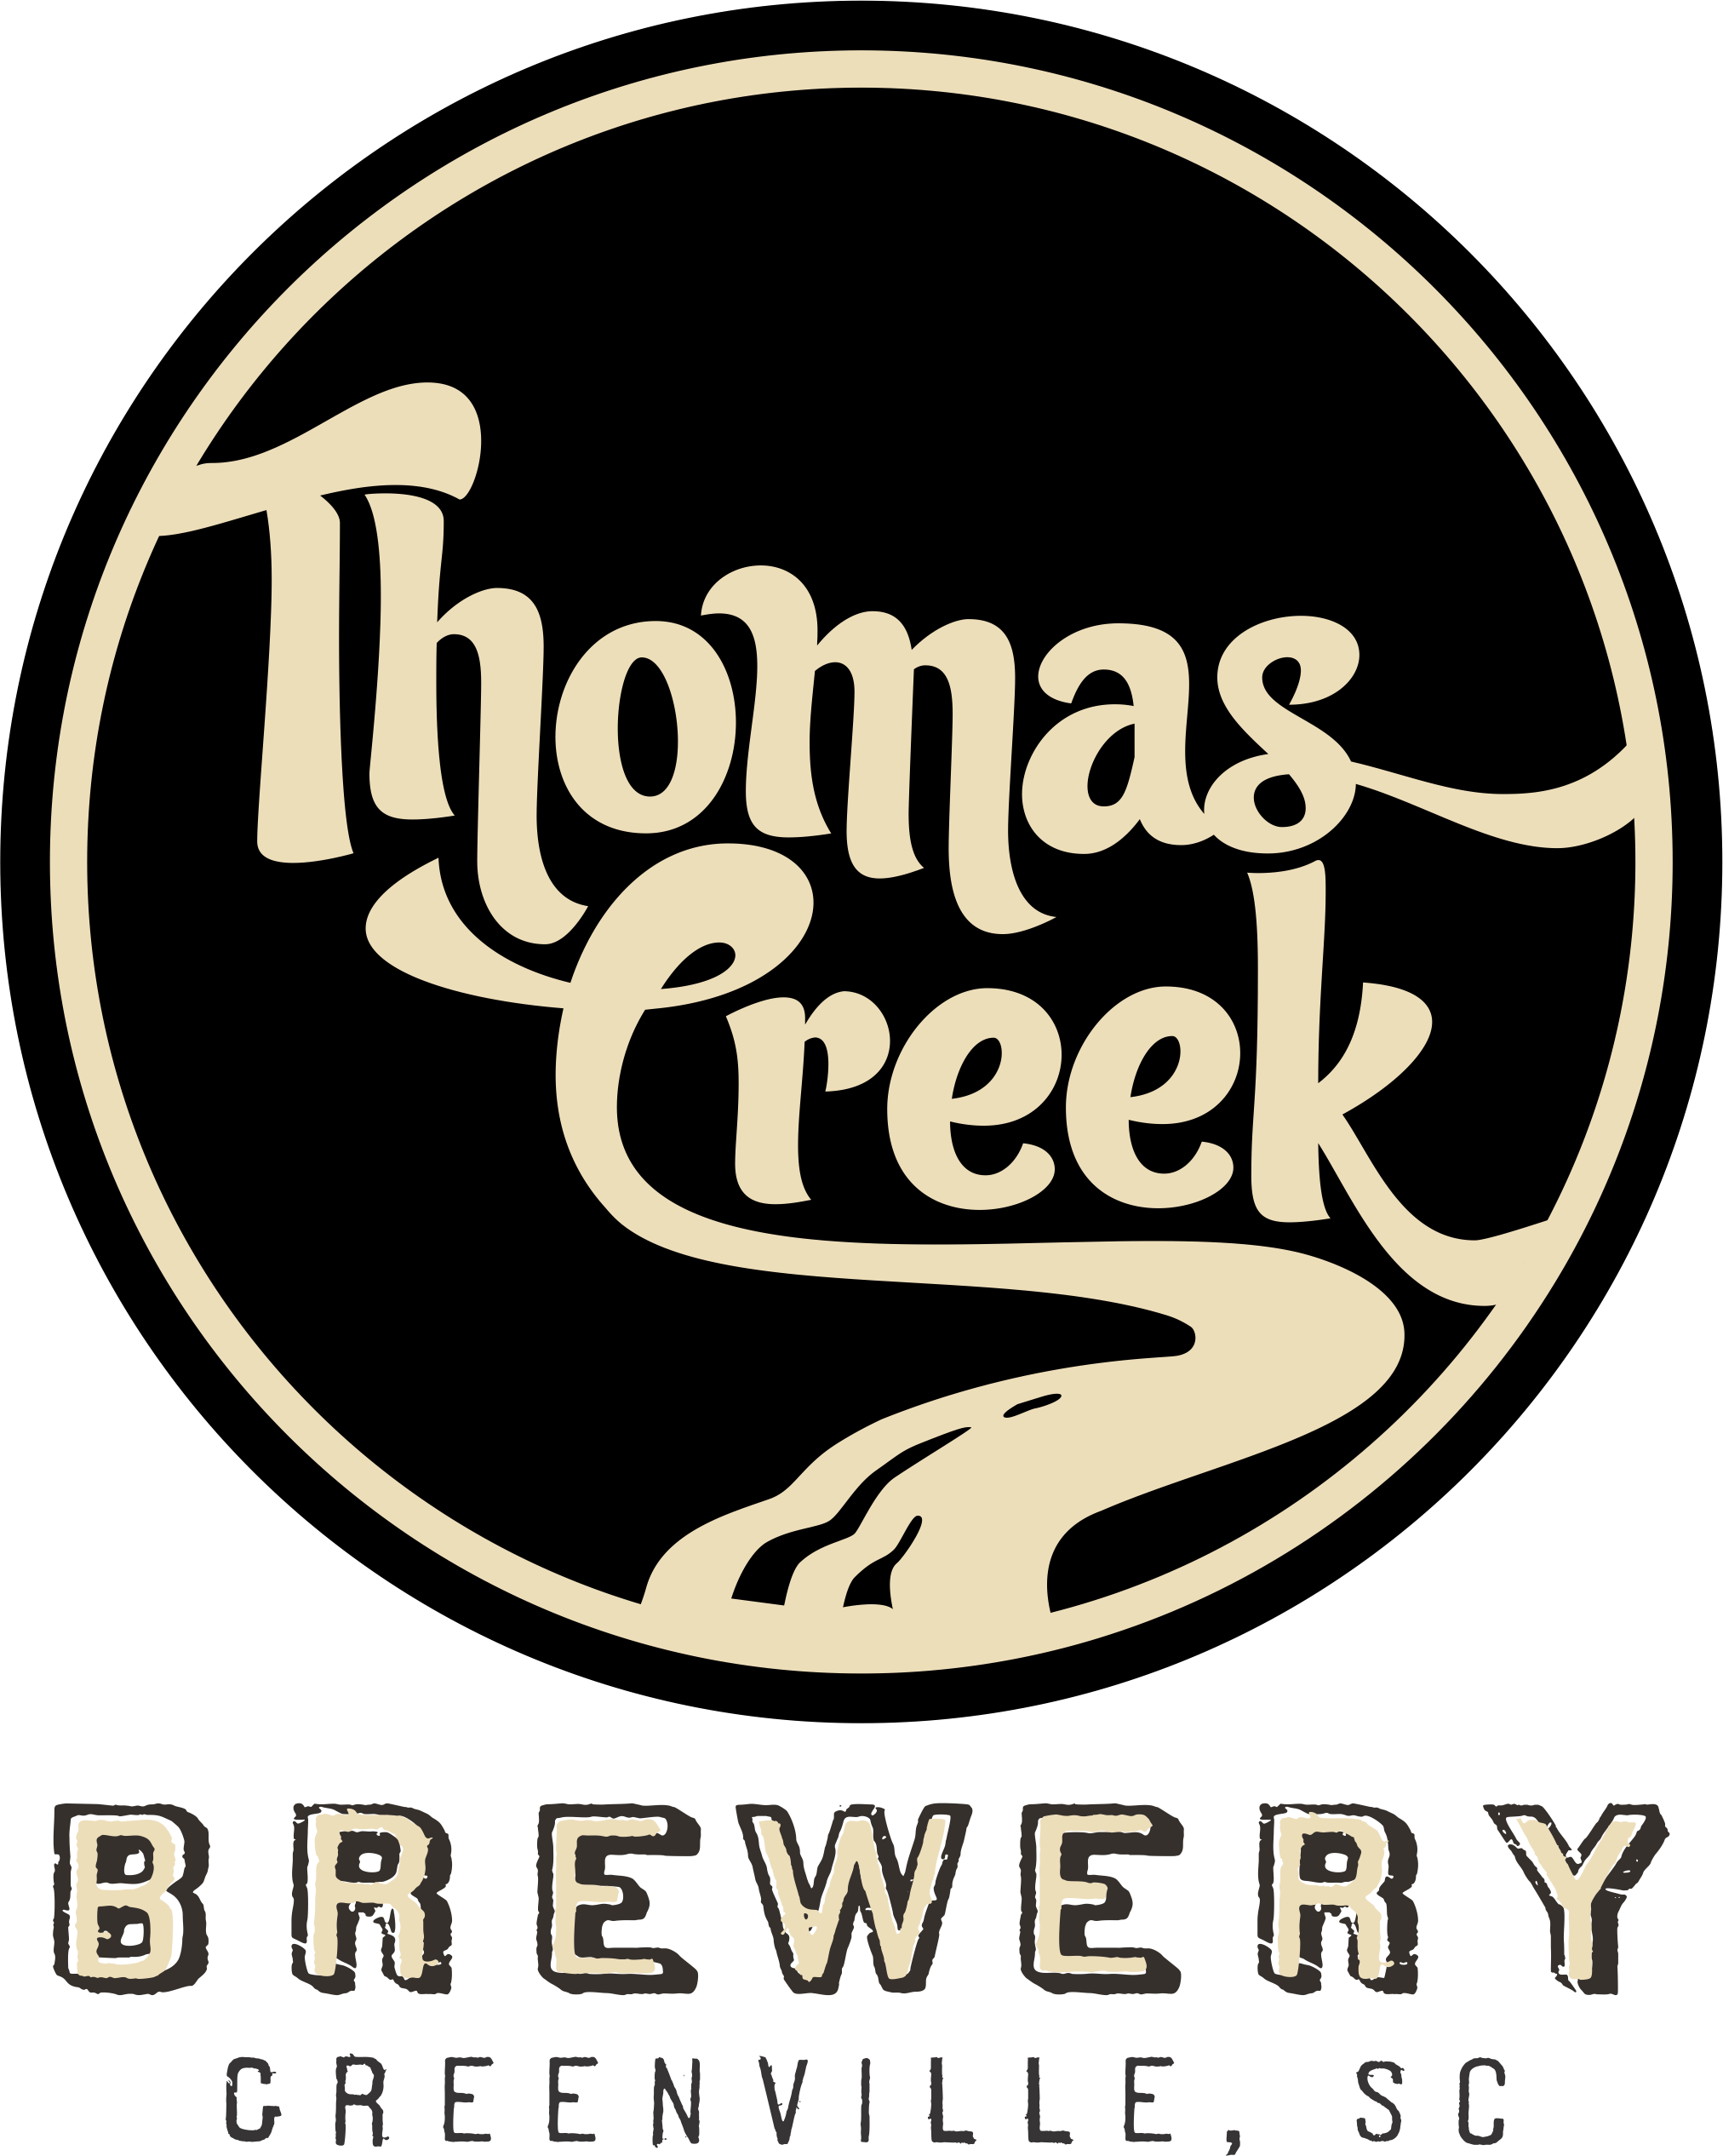 Thomas Creek